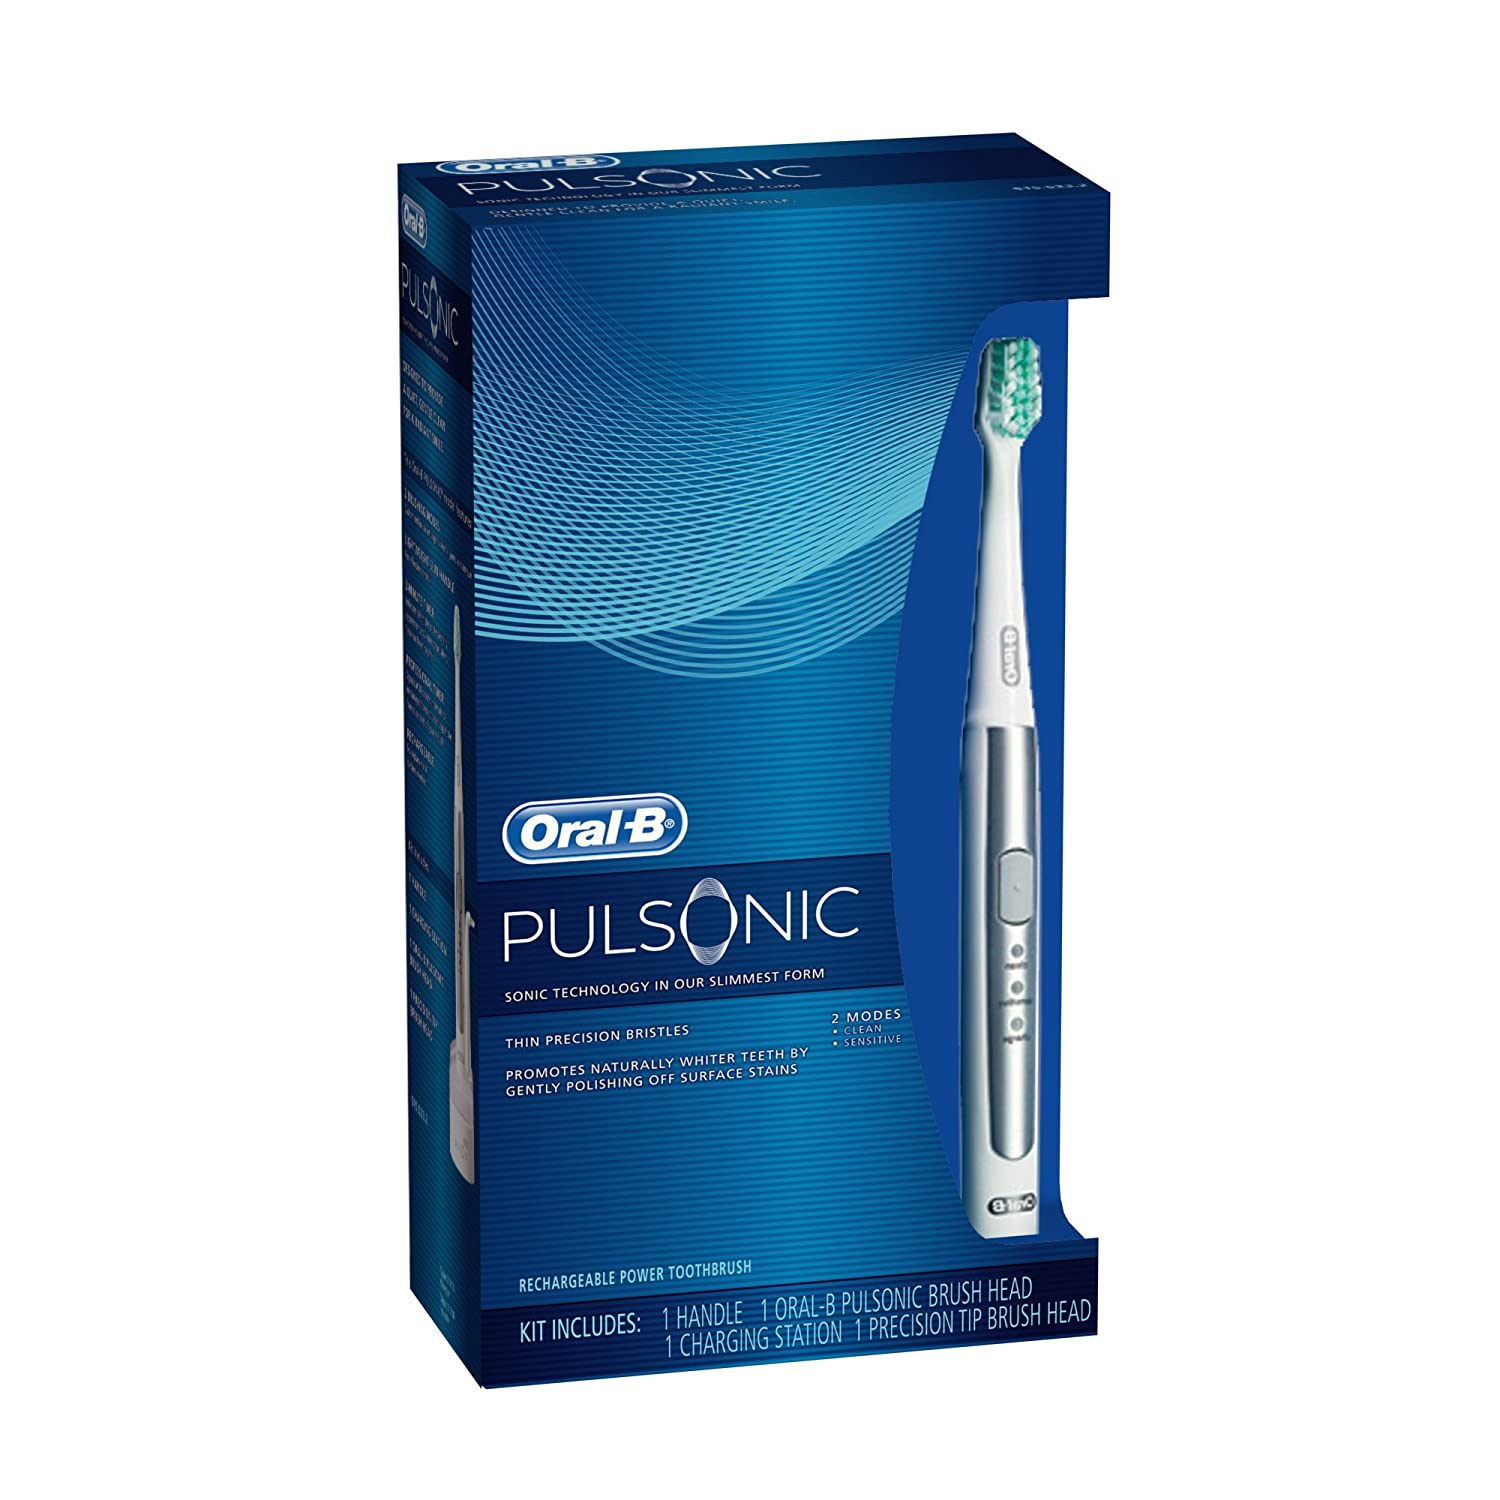 Oral-B Pulsonic Sonic Electric Toothbrush 1 Count (Price after rebate: $34.99)